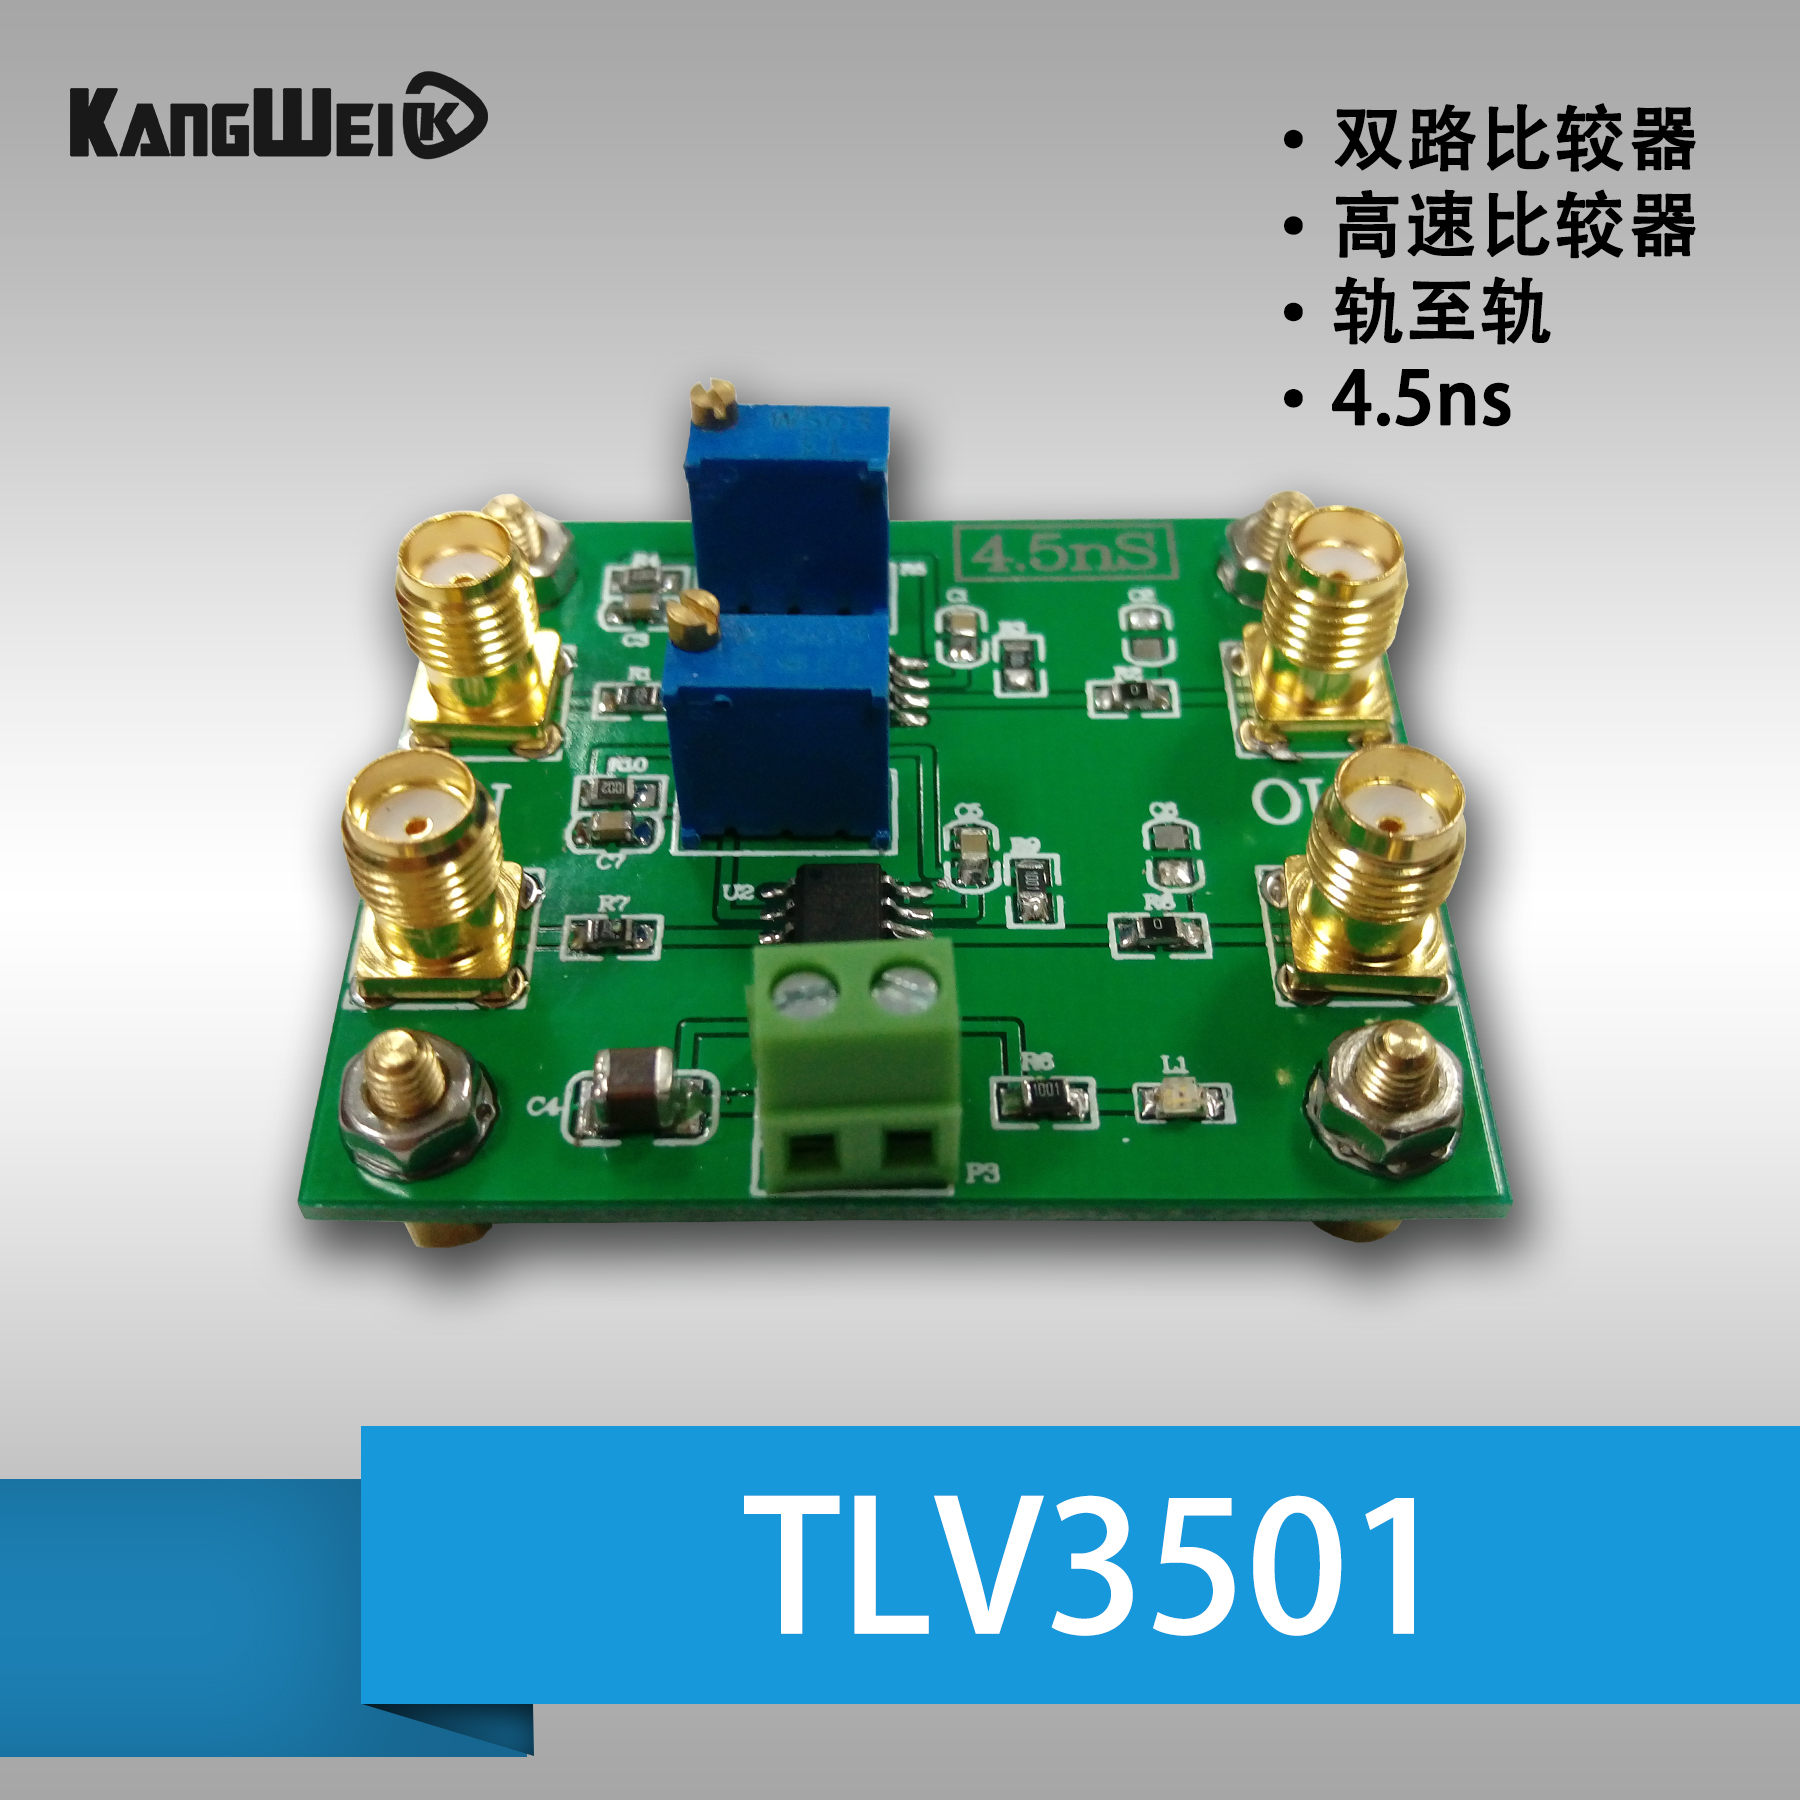 TLV3501 Module 4.5ns Ultra High Speed Comparator Rail to Rail Output Voltage Comparison Double Circuit ComparatorTLV3501 Module 4.5ns Ultra High Speed Comparator Rail to Rail Output Voltage Comparison Double Circuit Comparator